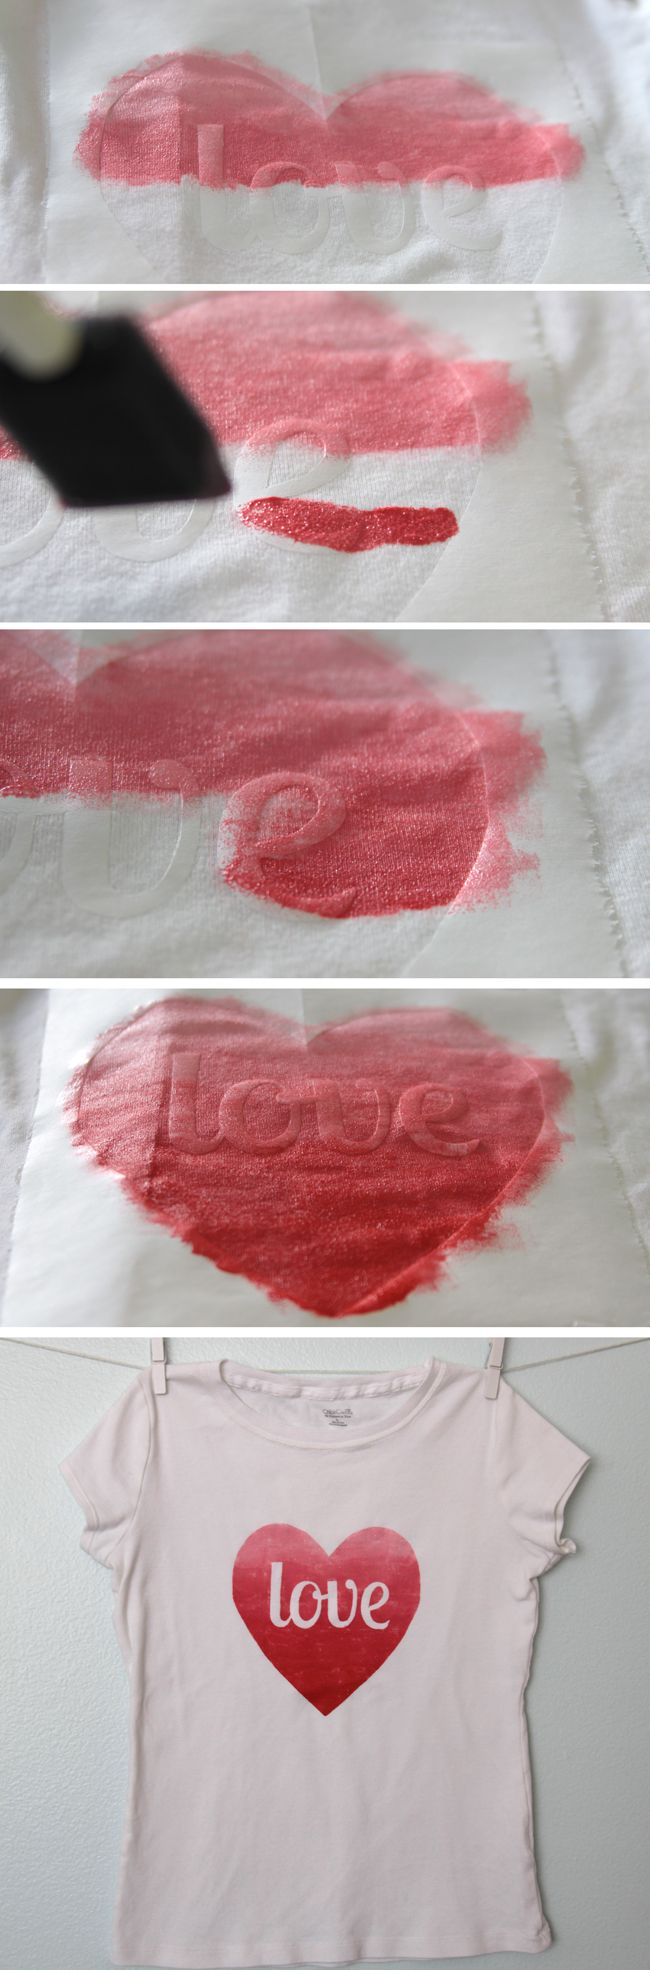 "Tweet Pin It Today's project is a very simple freezer paper stencil shirt – just a heart with the word ""love"" in the middle. I kept the design simple because I wanted to see if by mixing colors of fabric paint I could get an ombre effect on the heart. I mixed up five different …"